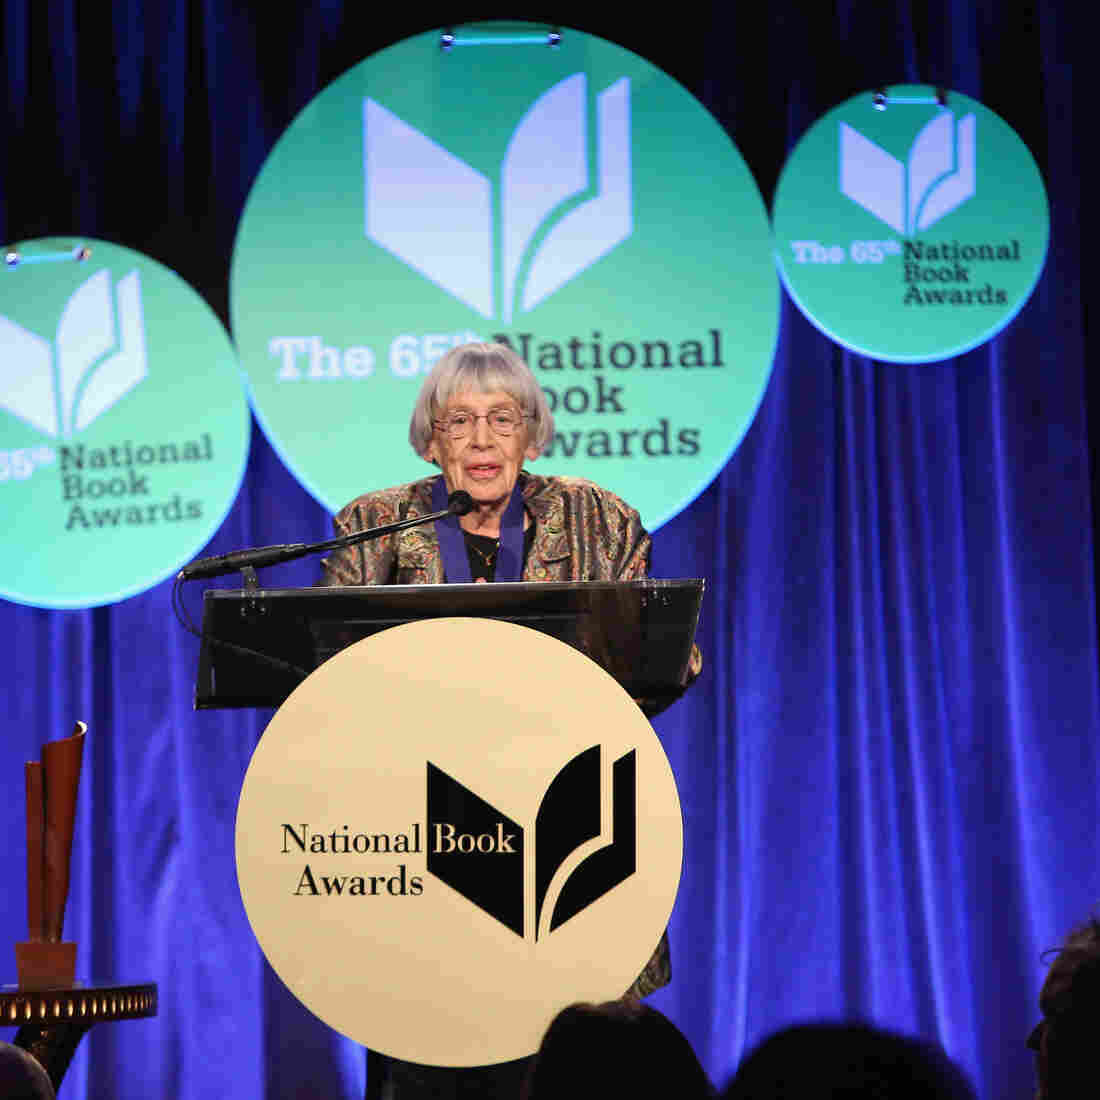 Book News: Ursula K. Le Guin Steals The Show At The National Book Awards